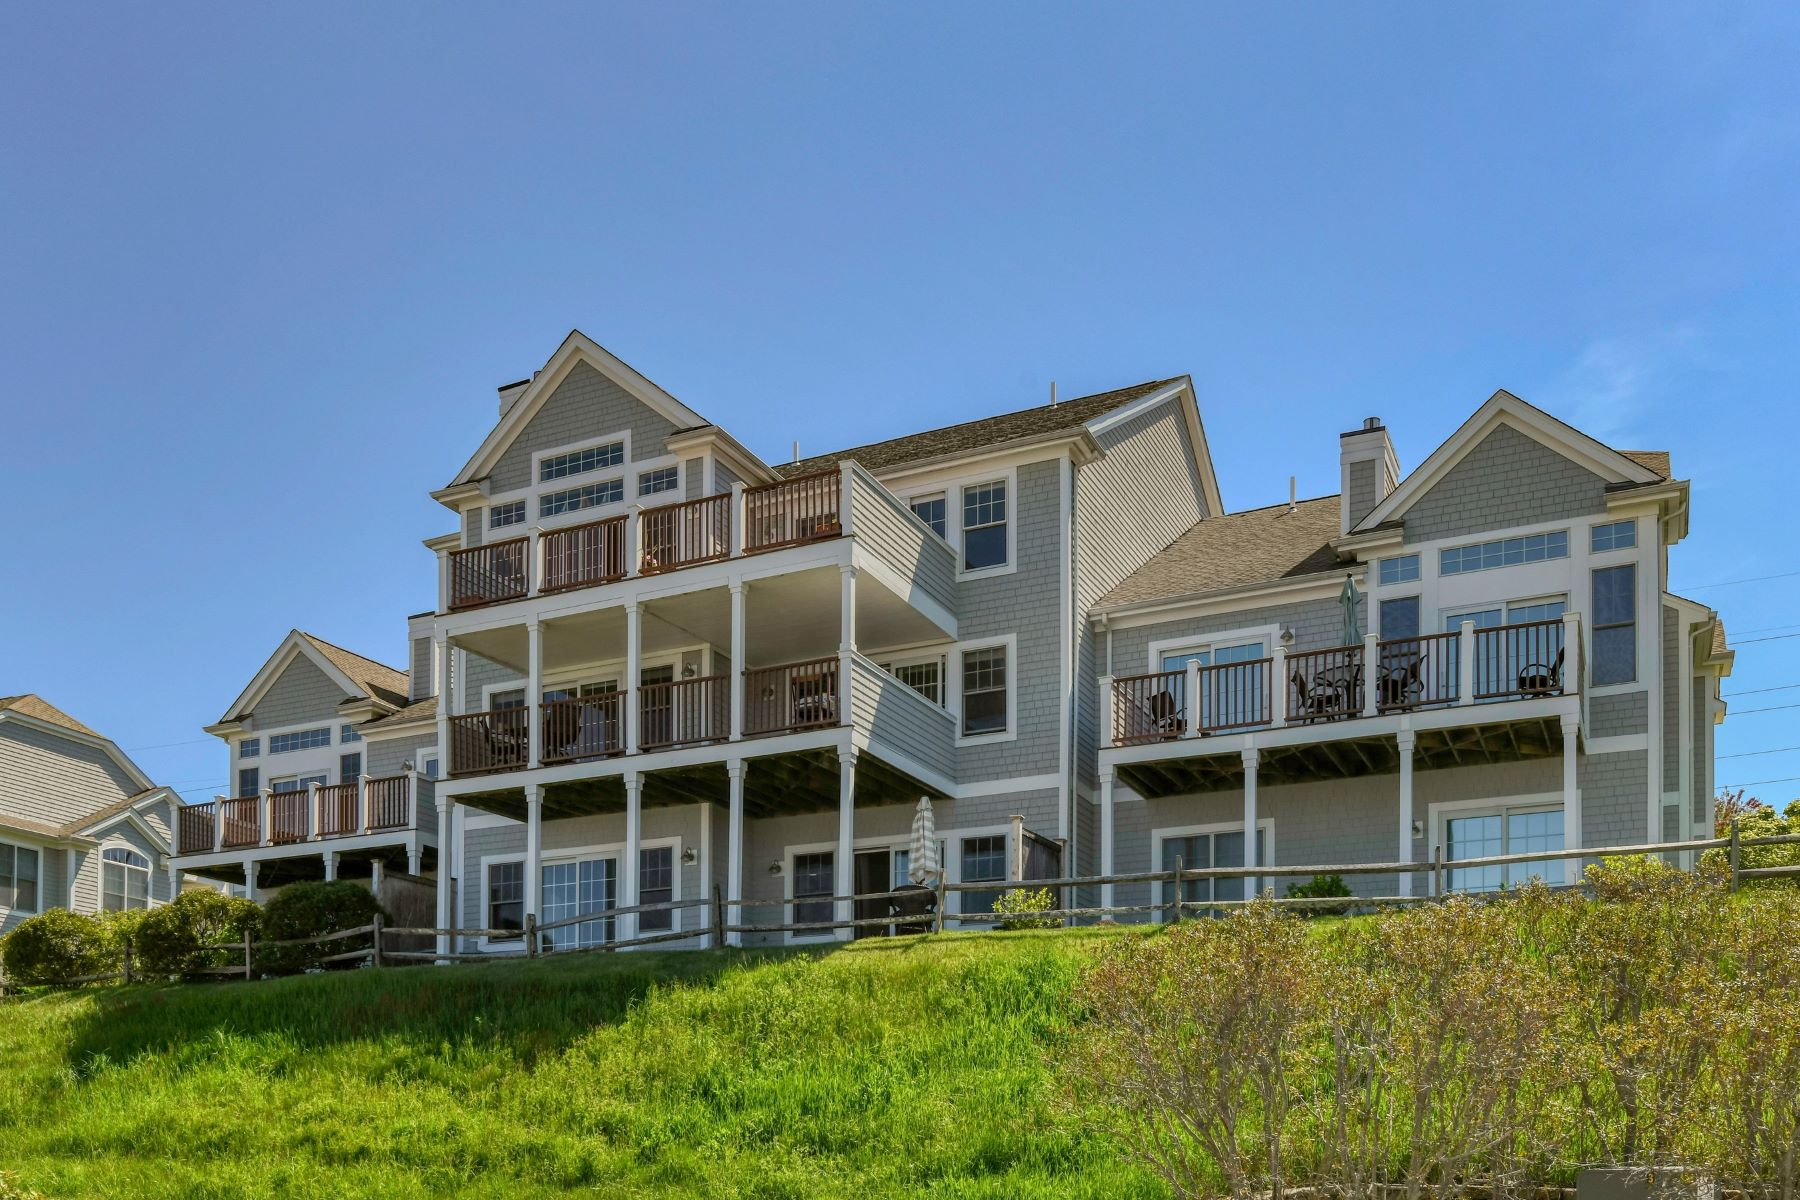 """Condominiums for Sale at Villages on Mount Hope Bay """"Lower Westport"""" 55 Topsail Drive Tiverton, Rhode Island 02878 United States"""